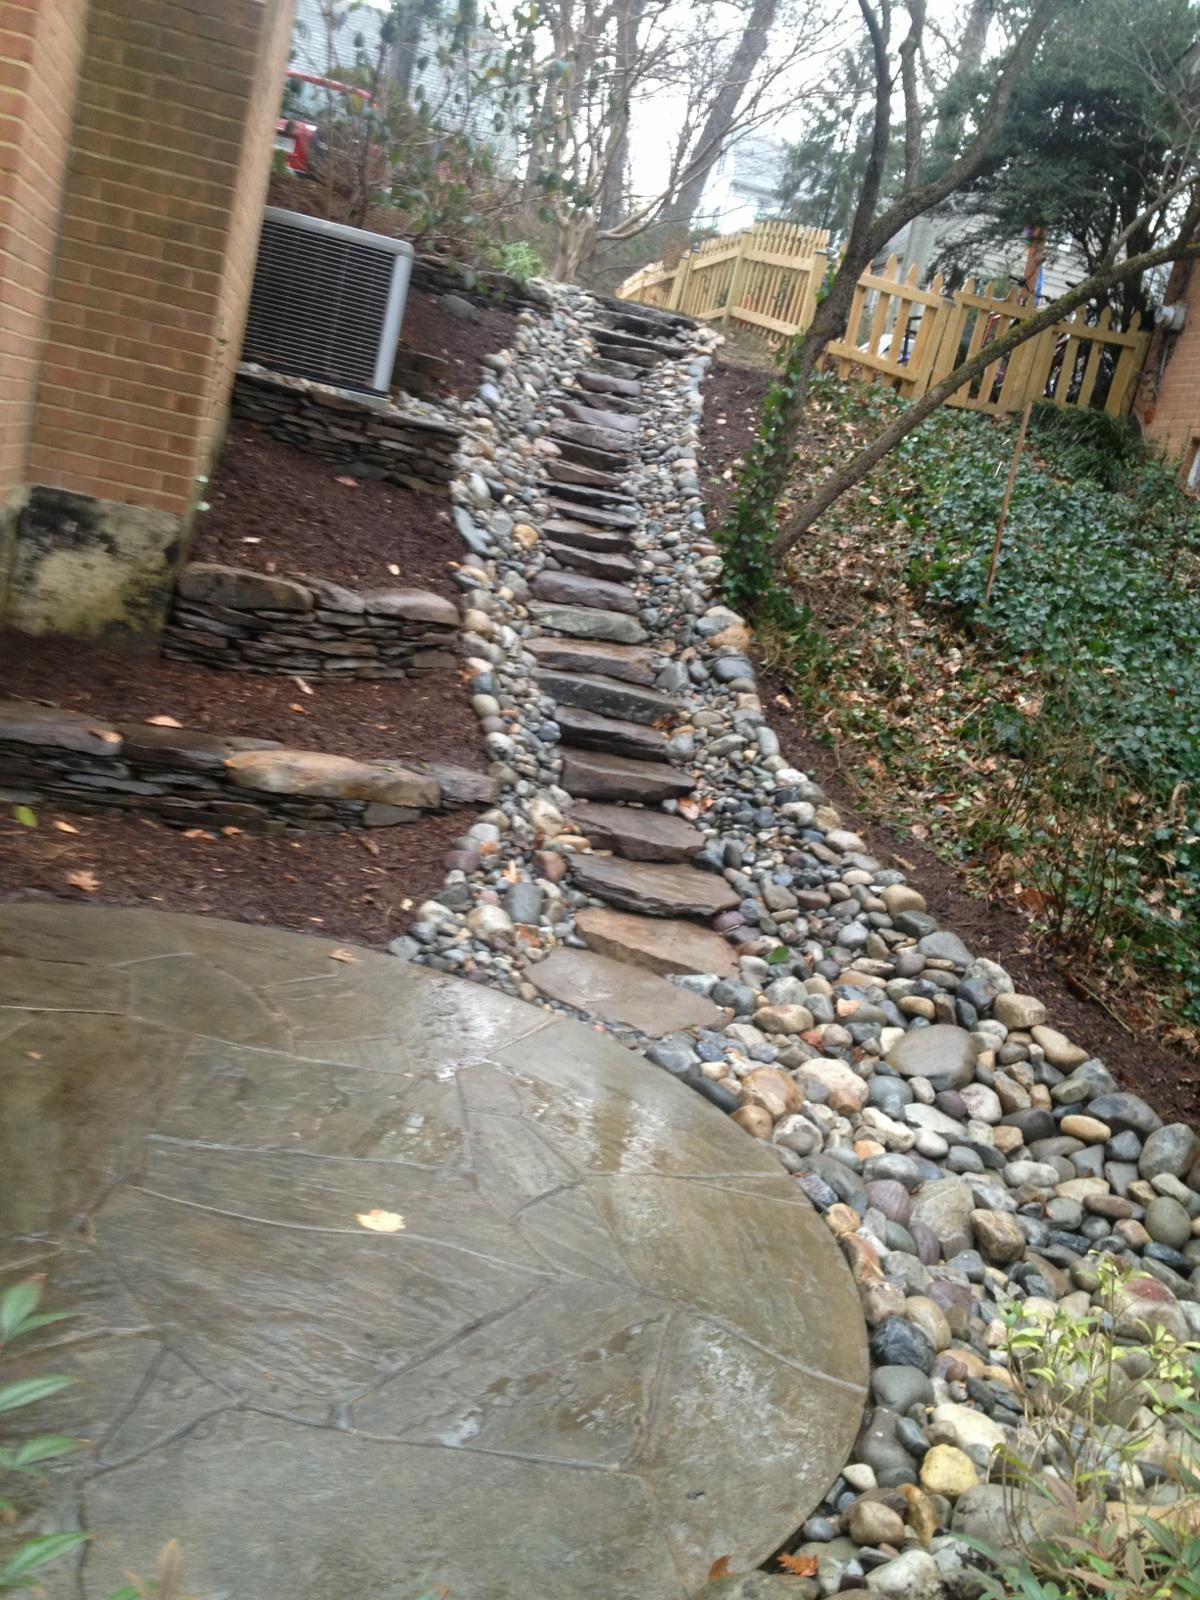 How to make a garden path with gravel - Create A Sturdy Yet Attractive Walkway On Any Slope With Stone And Gravel Repin